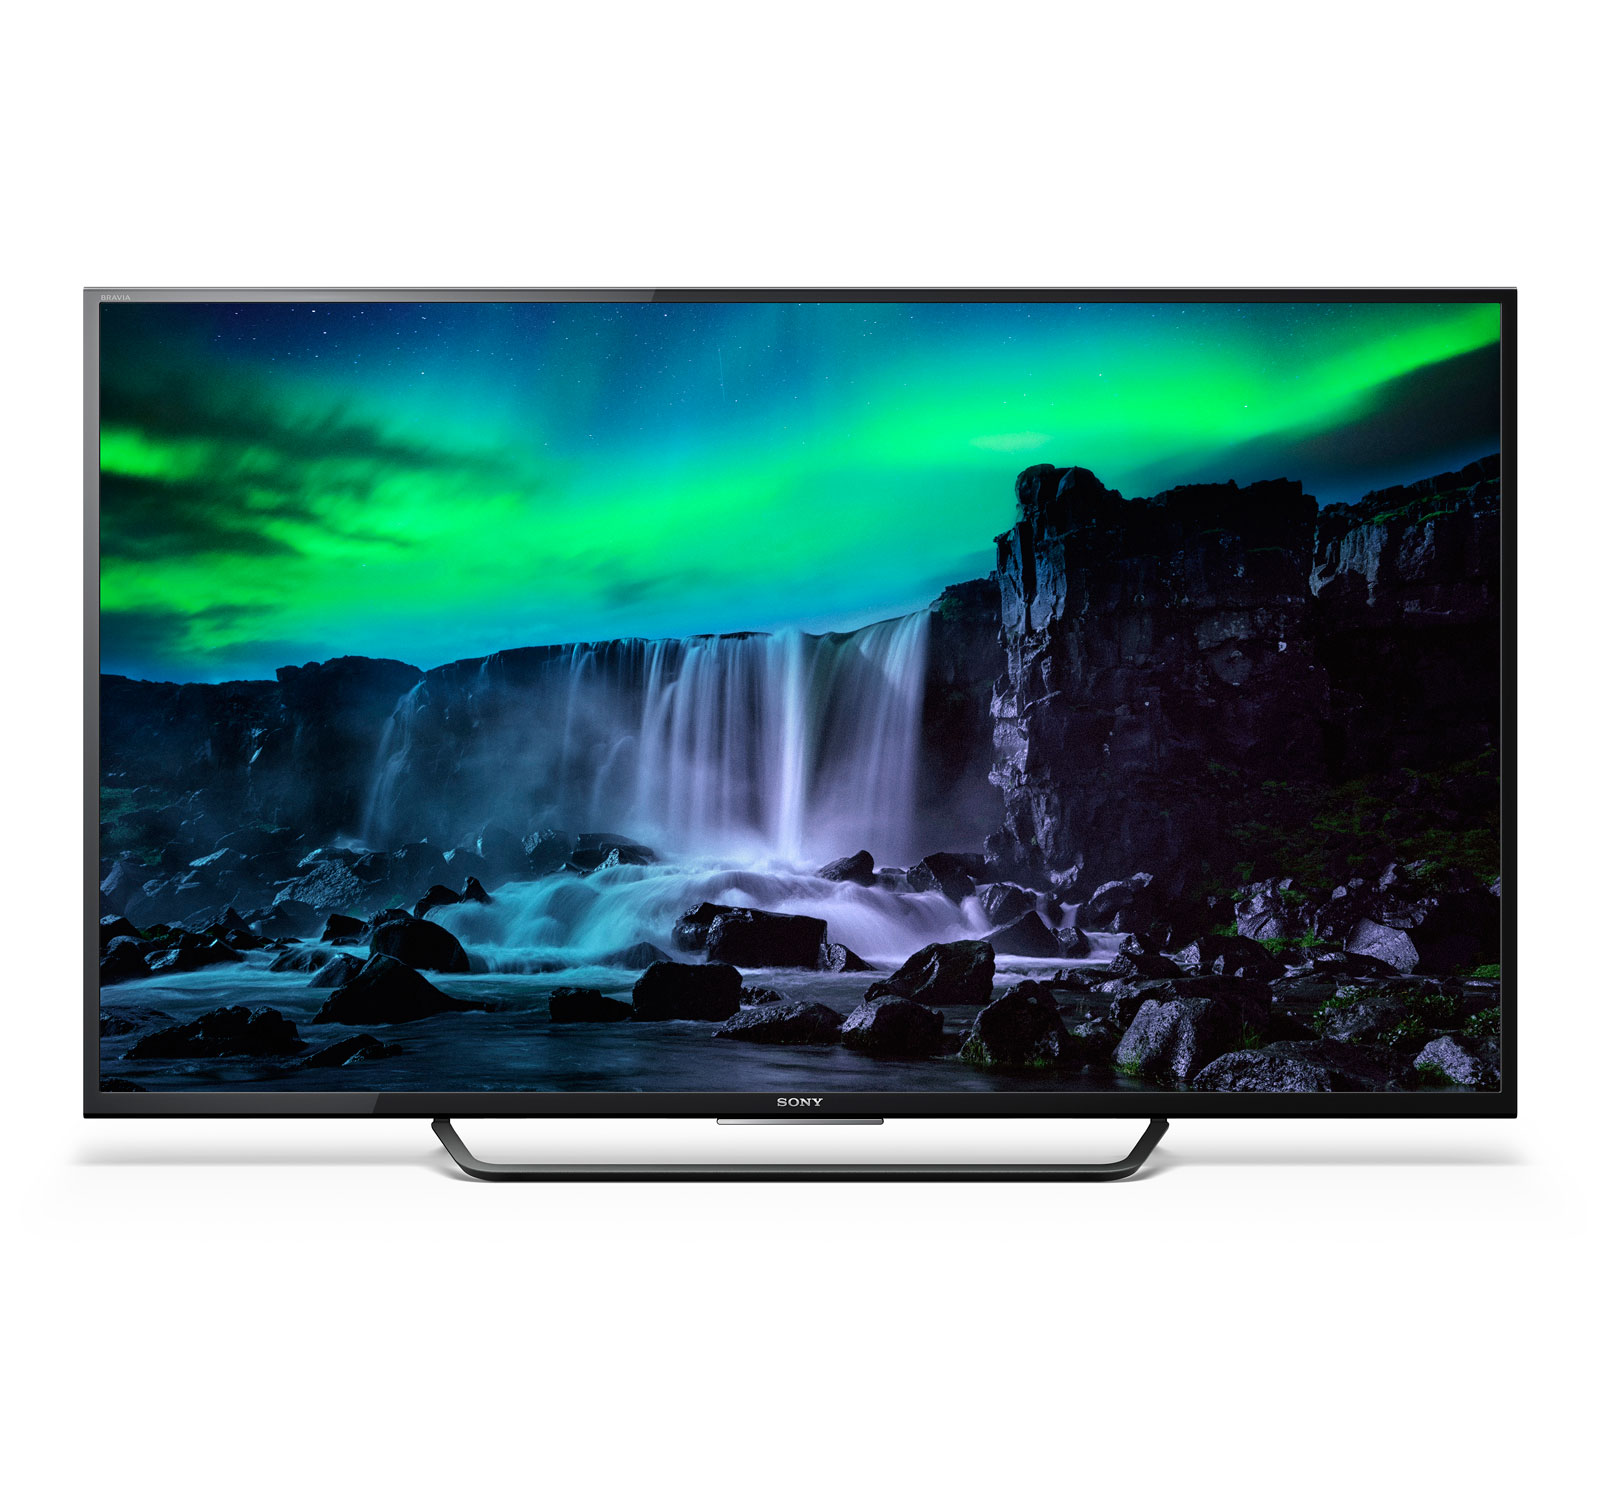 sony xbr65x810c 65 inch 4k uhd led smart tv ebay. Black Bedroom Furniture Sets. Home Design Ideas